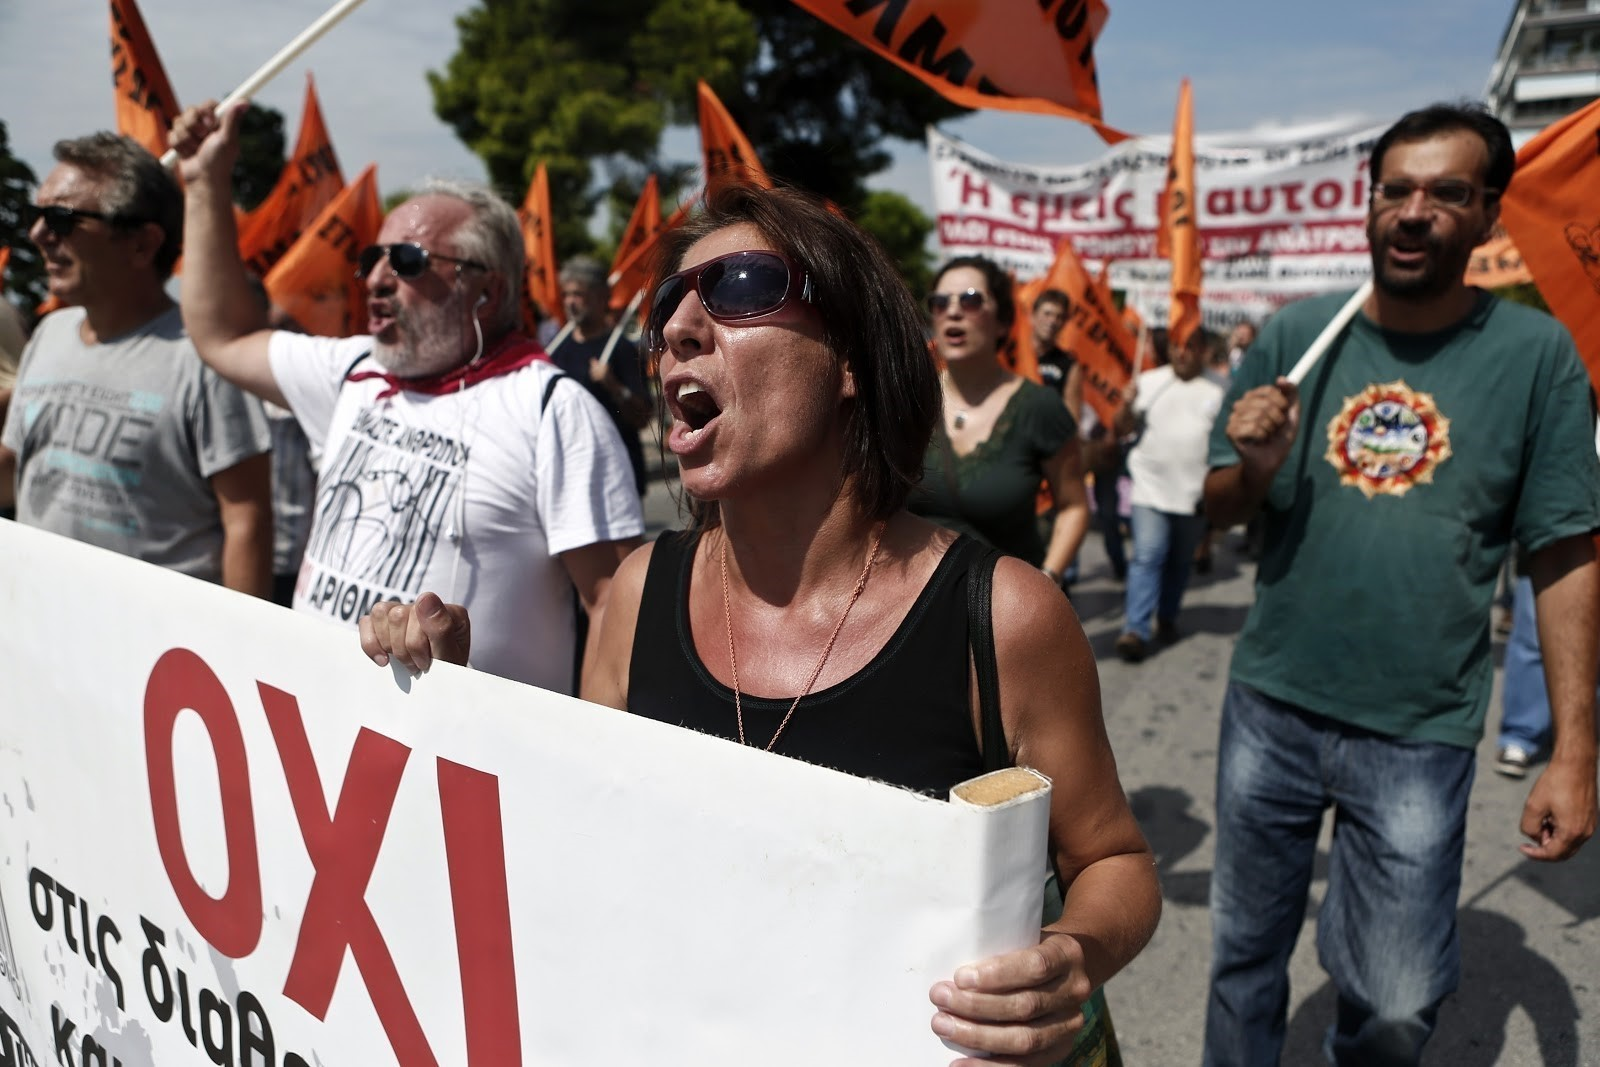 Anti-austerity protesters march in Greece.